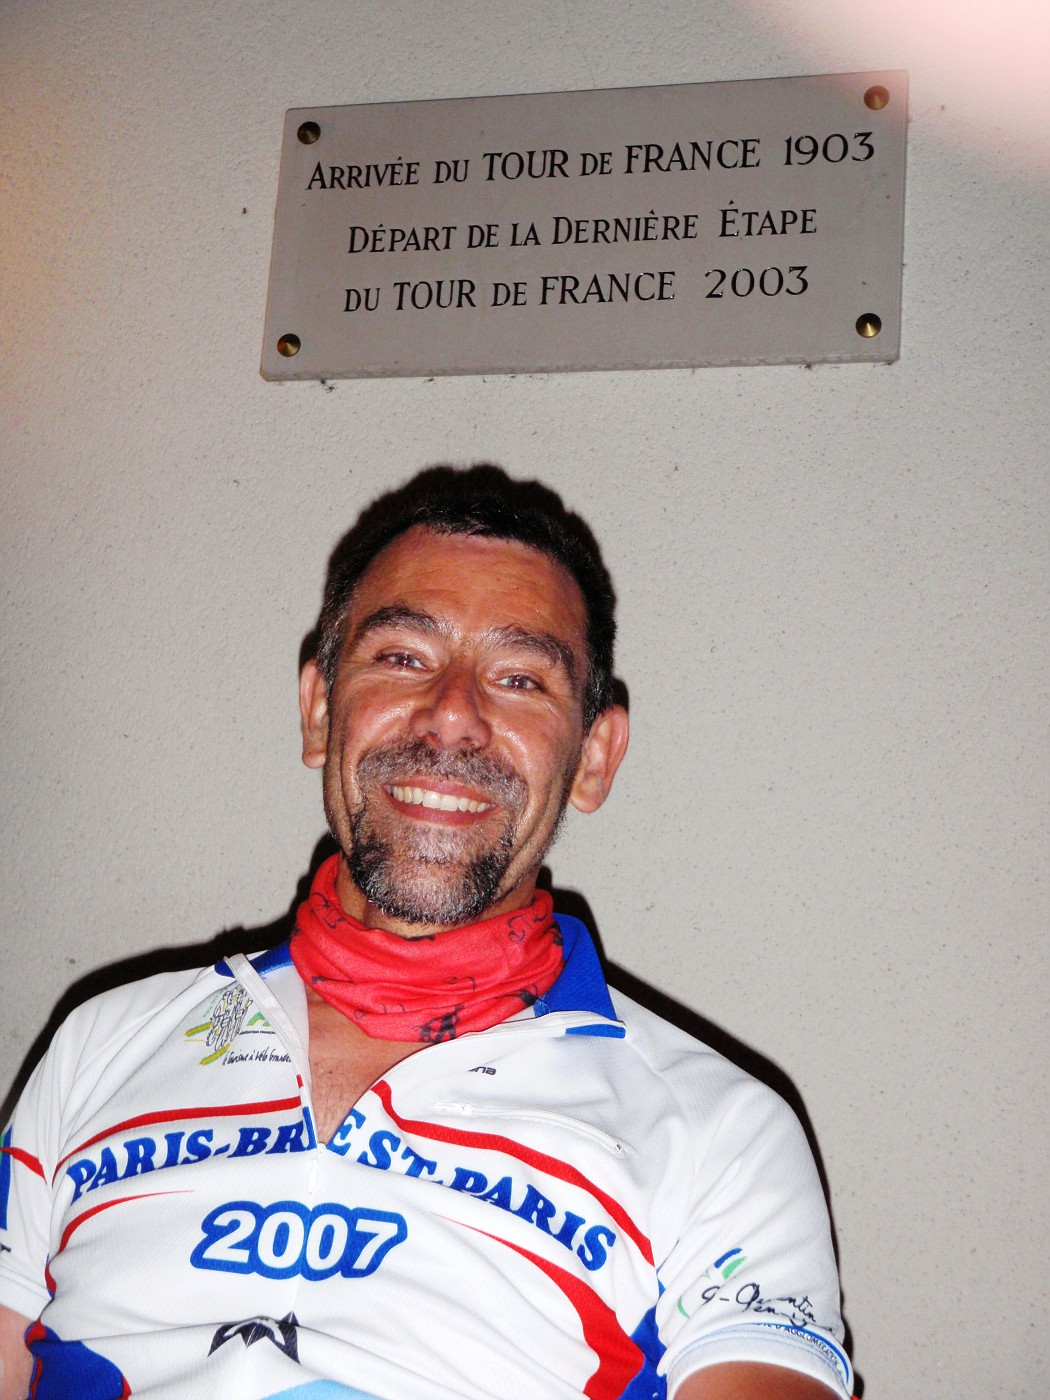 Andreas at a place of a stage of the Tour de France